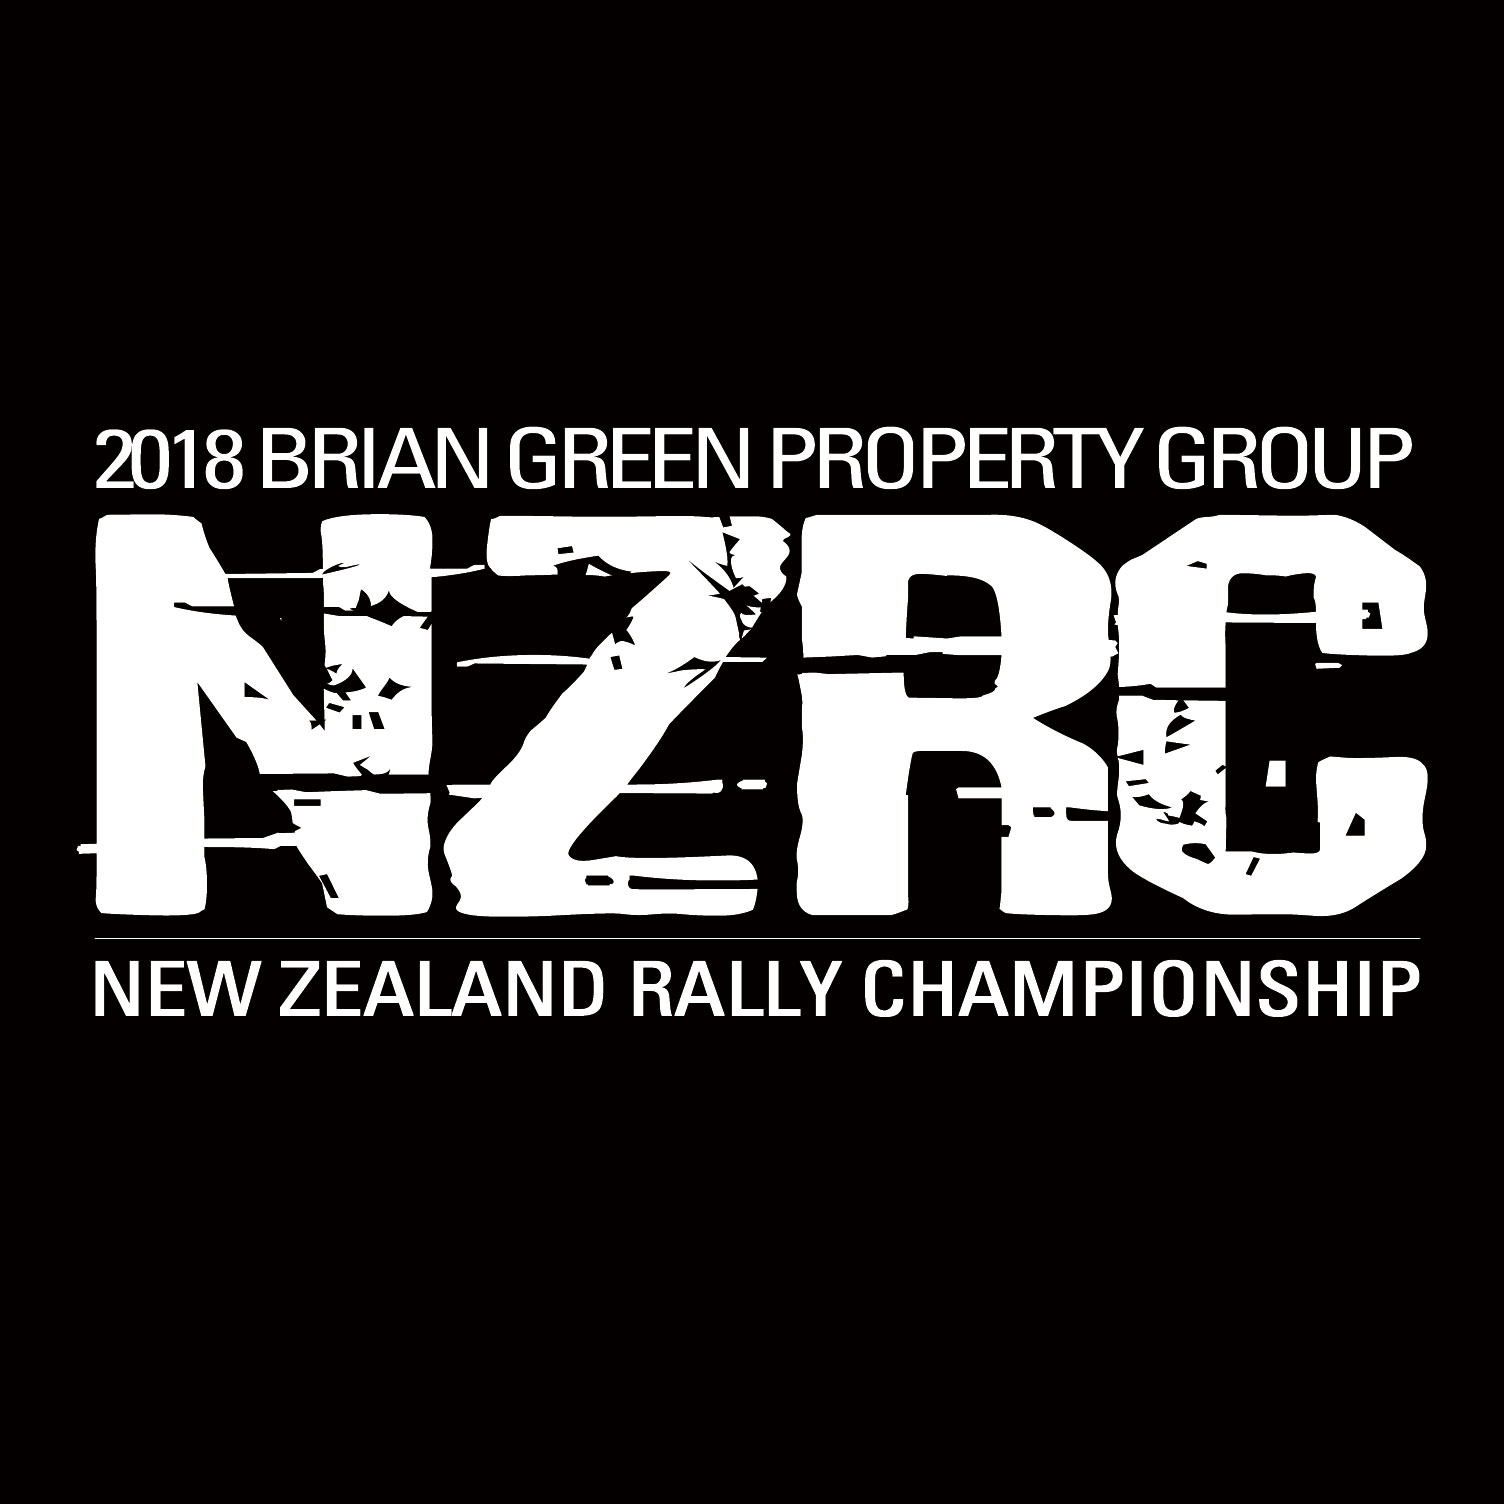 Quinn aiming to be at Lone Star Rally Canterbury | :: Brian Green Property Group New Zealand Rally Championship ::